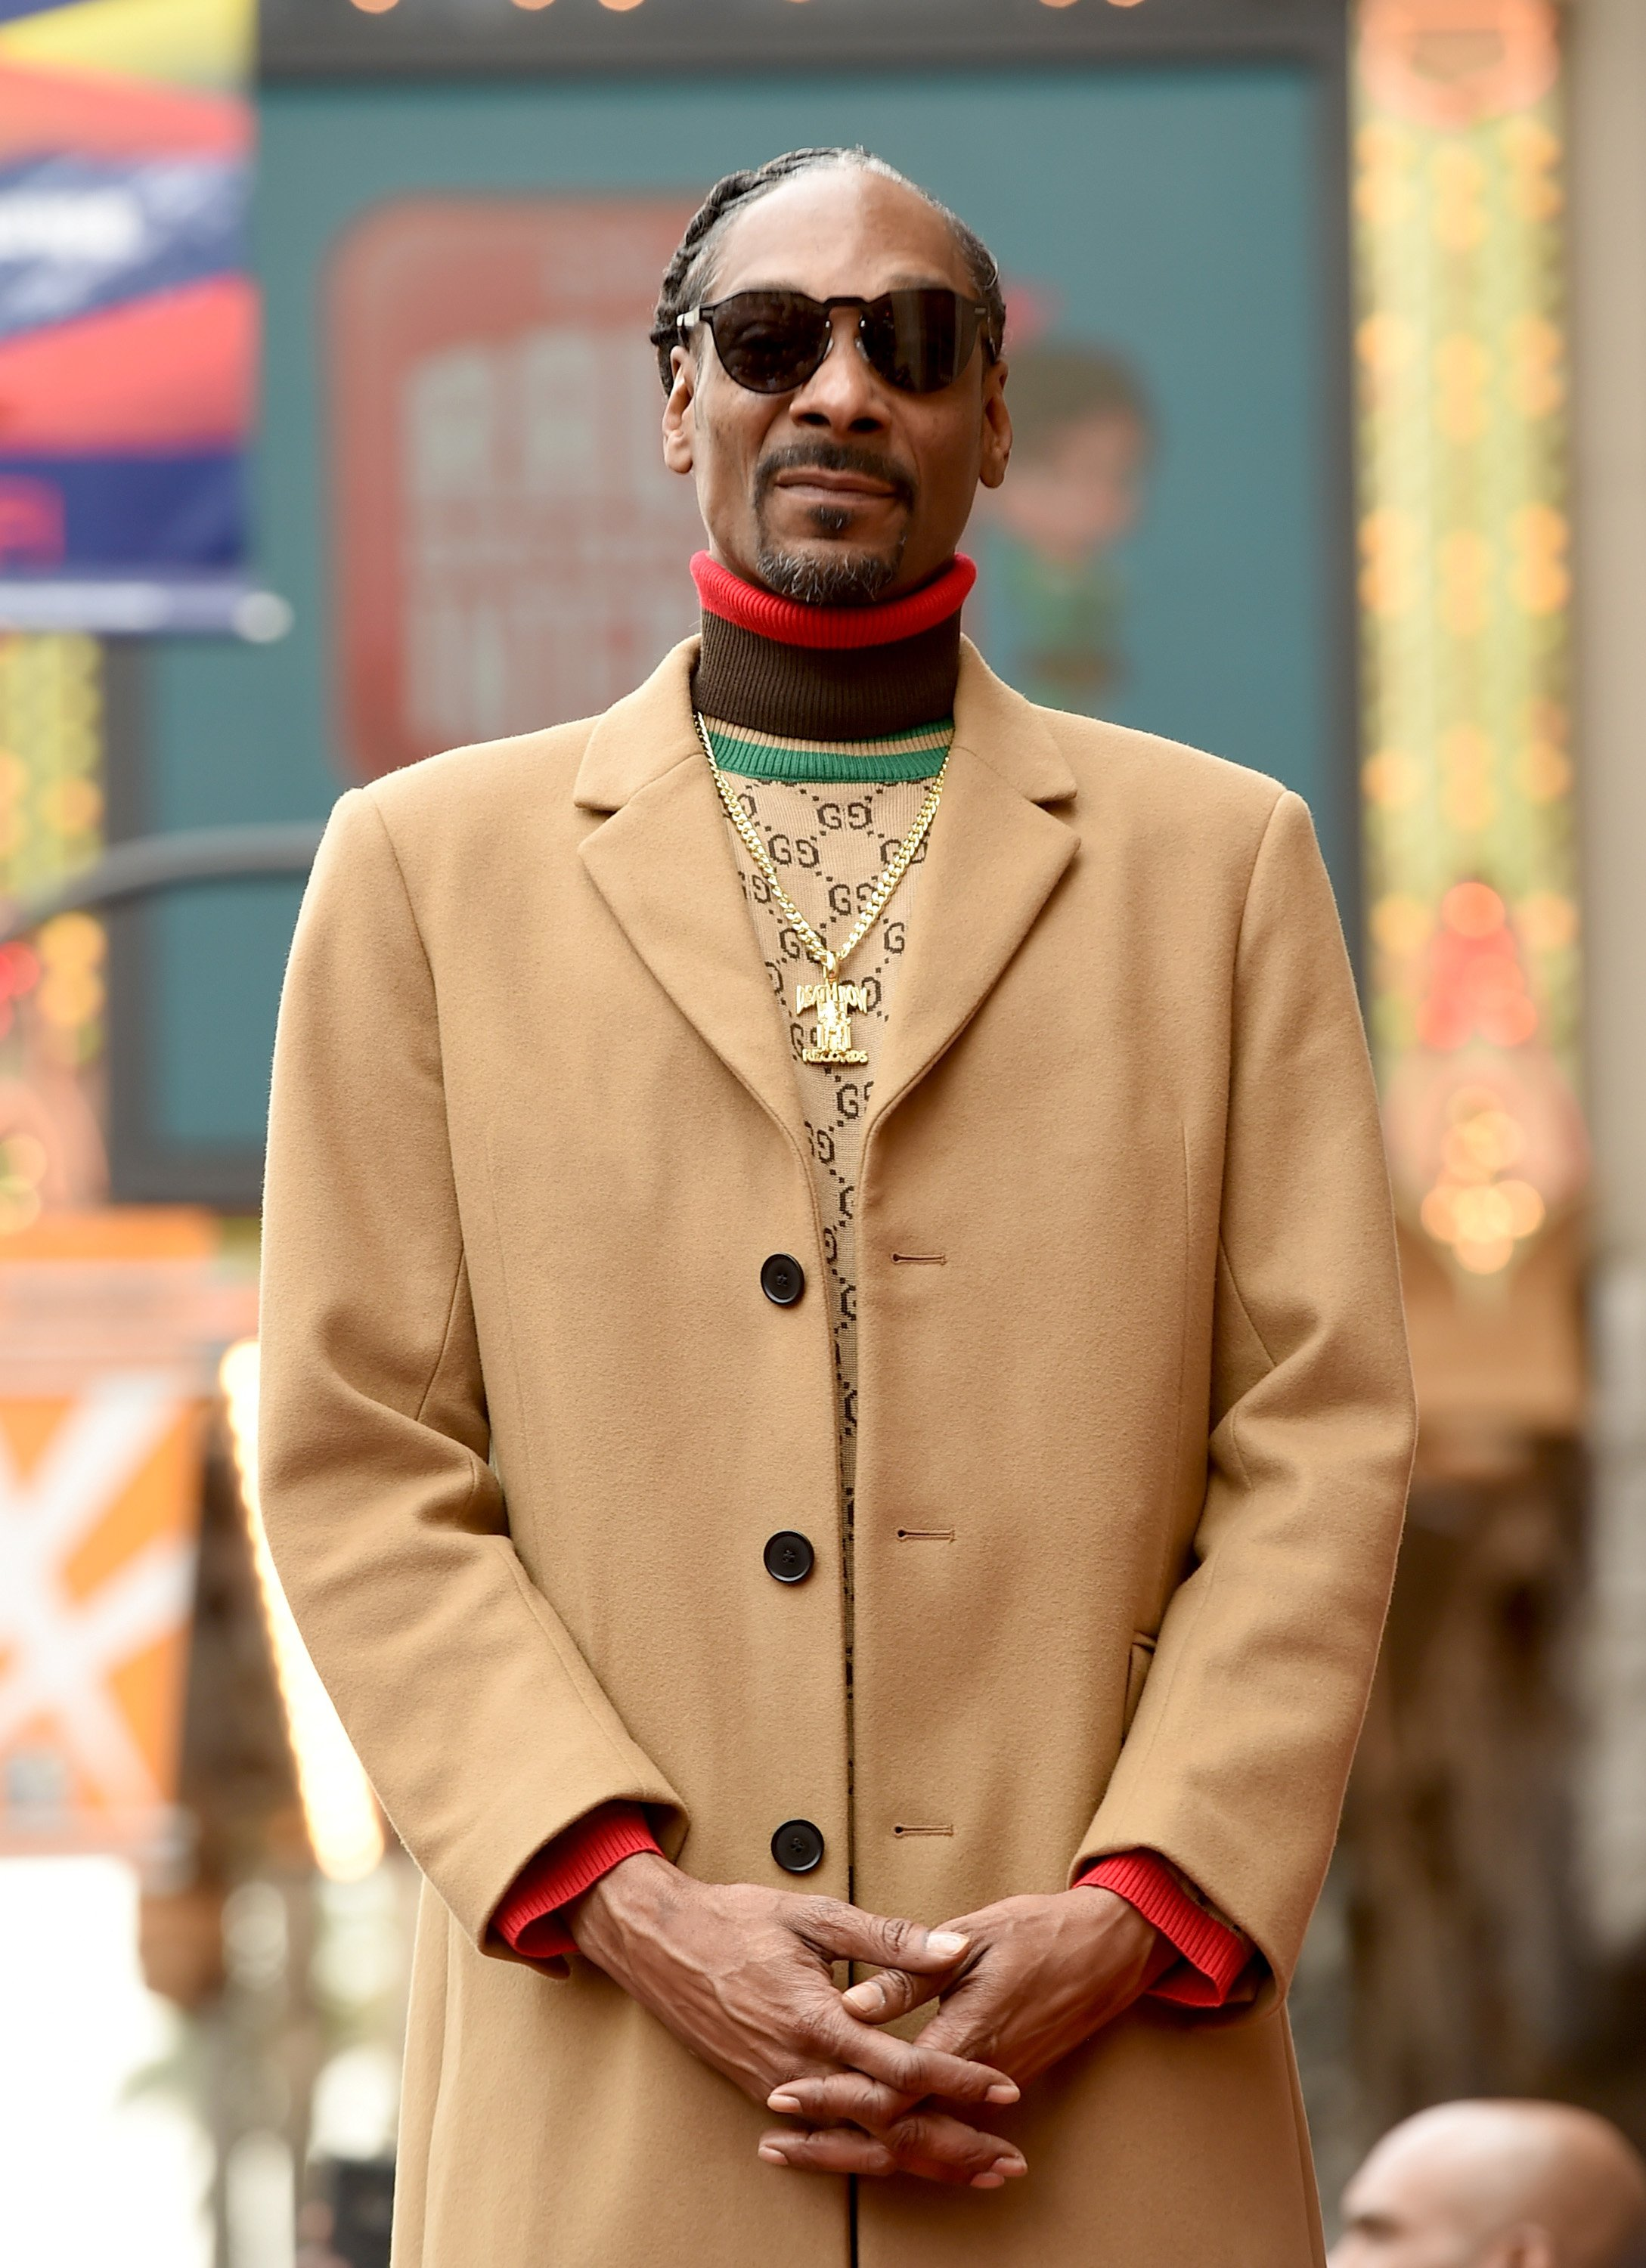 Snoop Dogg getting his star on The Hollywood Walk Of Fame in LA on Nov. 19, 2018 | Photo: Getty Images